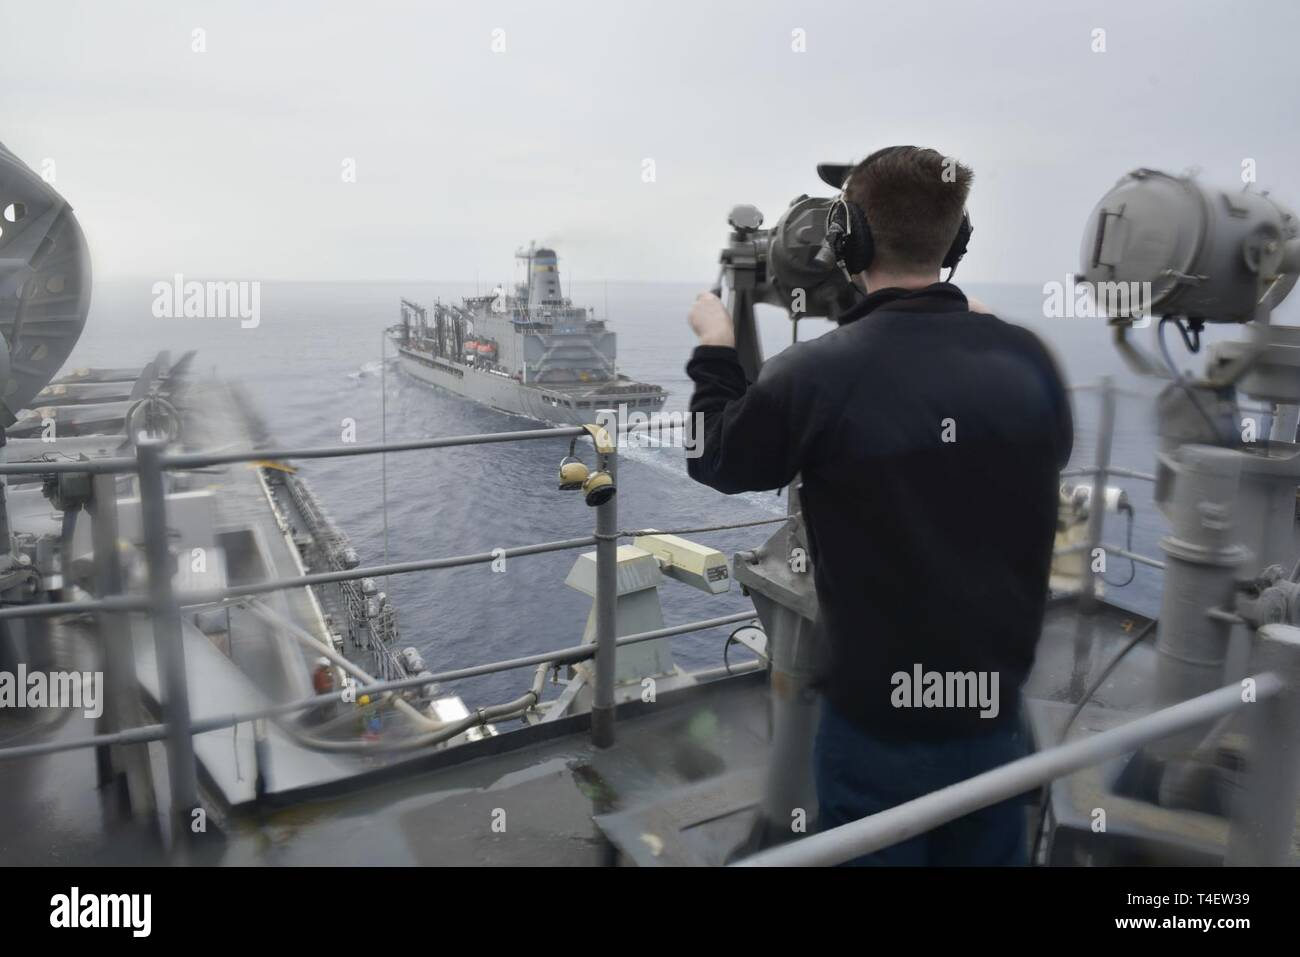 SOUTH CHINA SEA (April 4, 2019) - Operations Specialist Seaman George Allen, from Columbus, Ohio, stands watch onboard the amphibious assault ship USS Wasp (LHD 1) during a replenishment-at-sea  with the fleet replenishment oiler USNS Pecos (T-AO 197) during Exercise Balikatan 2019. Exercise Balikatan, in its 35th iteration, is an annual U.S., Philippine military training exercise focused on a variety of missions, including humanitarian assistance and disaster relief, counter-terrorism, and other combined military operations. - Stock Image